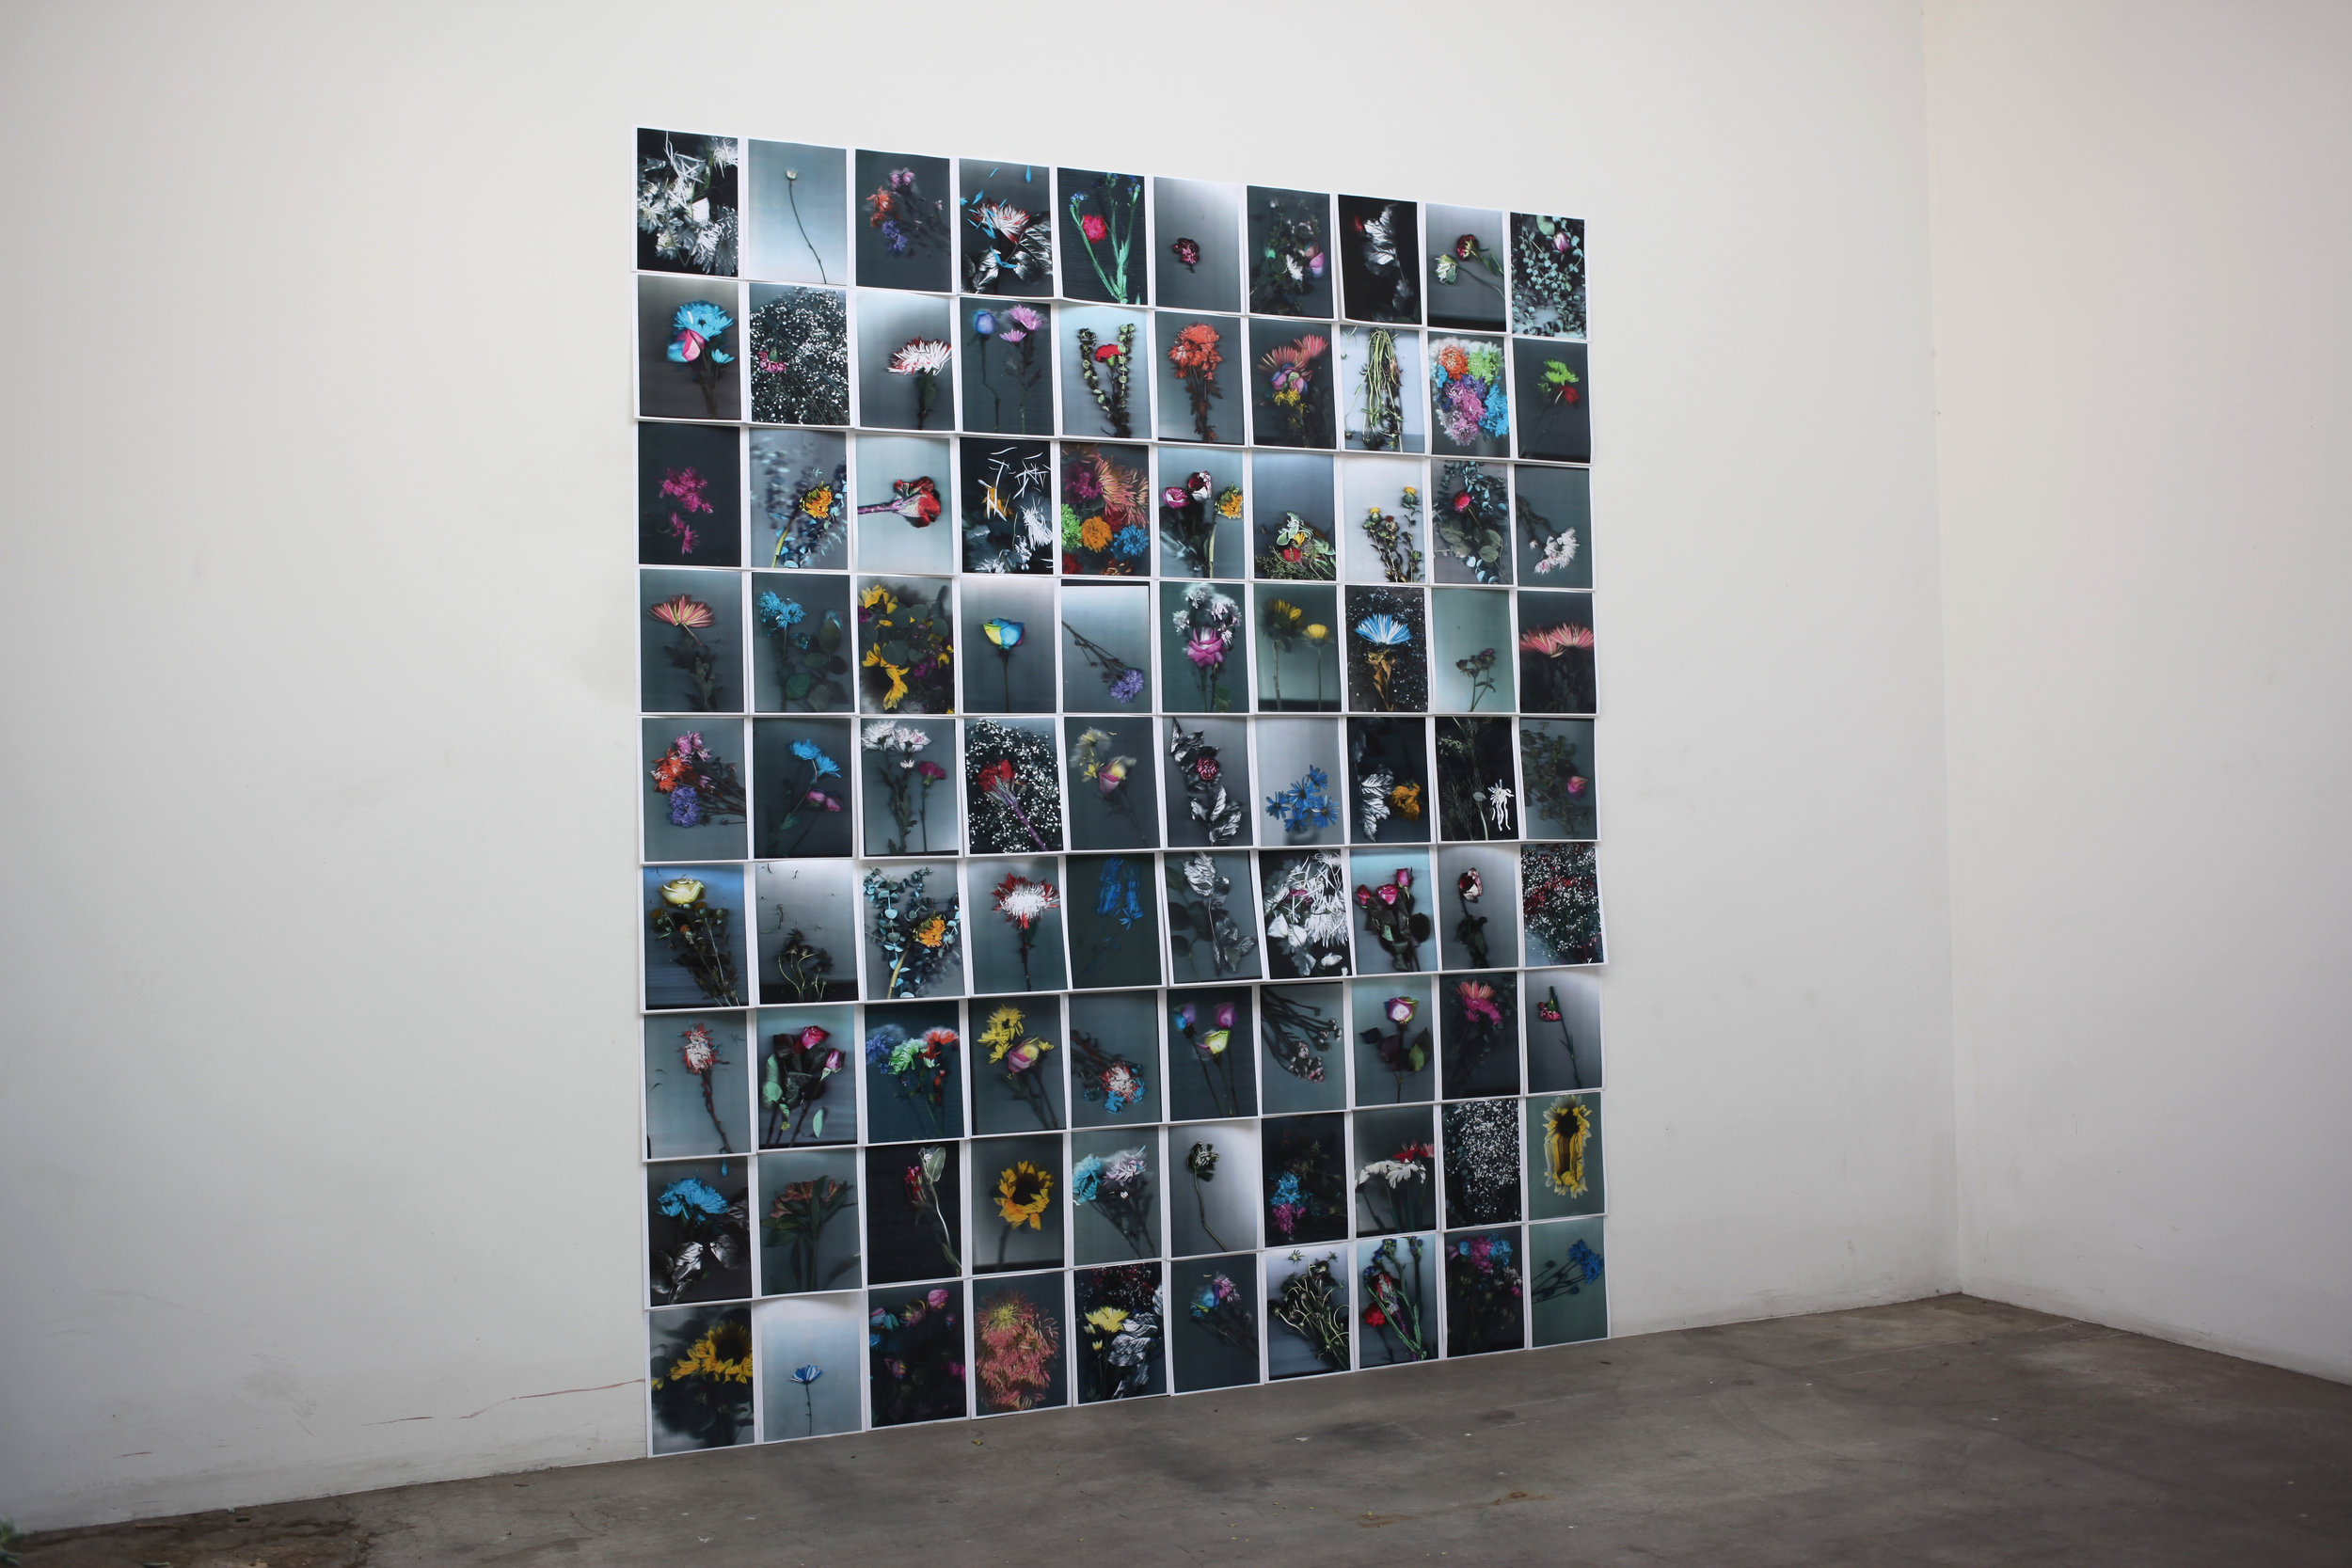 Quick   and   endless   I,  2017 Inkjet prints 99 x 80 inches